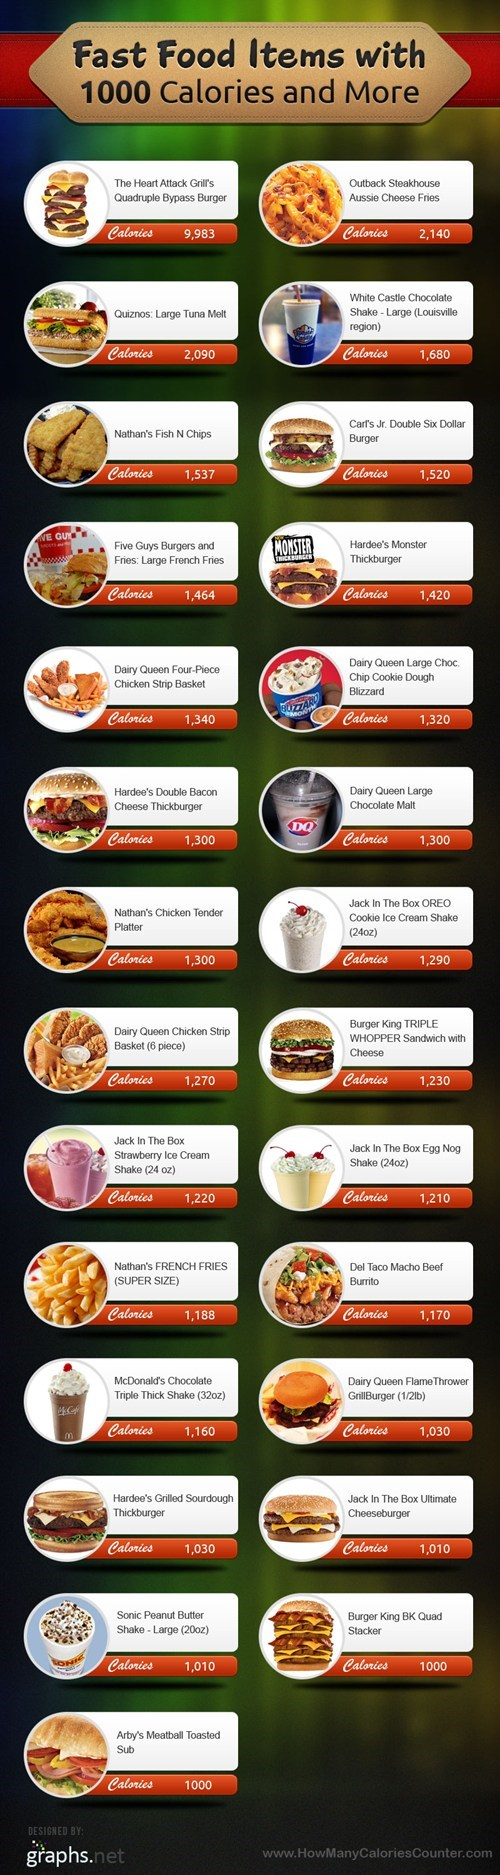 Heart Attack Grill,calories,health,obesity,infographic,fast food